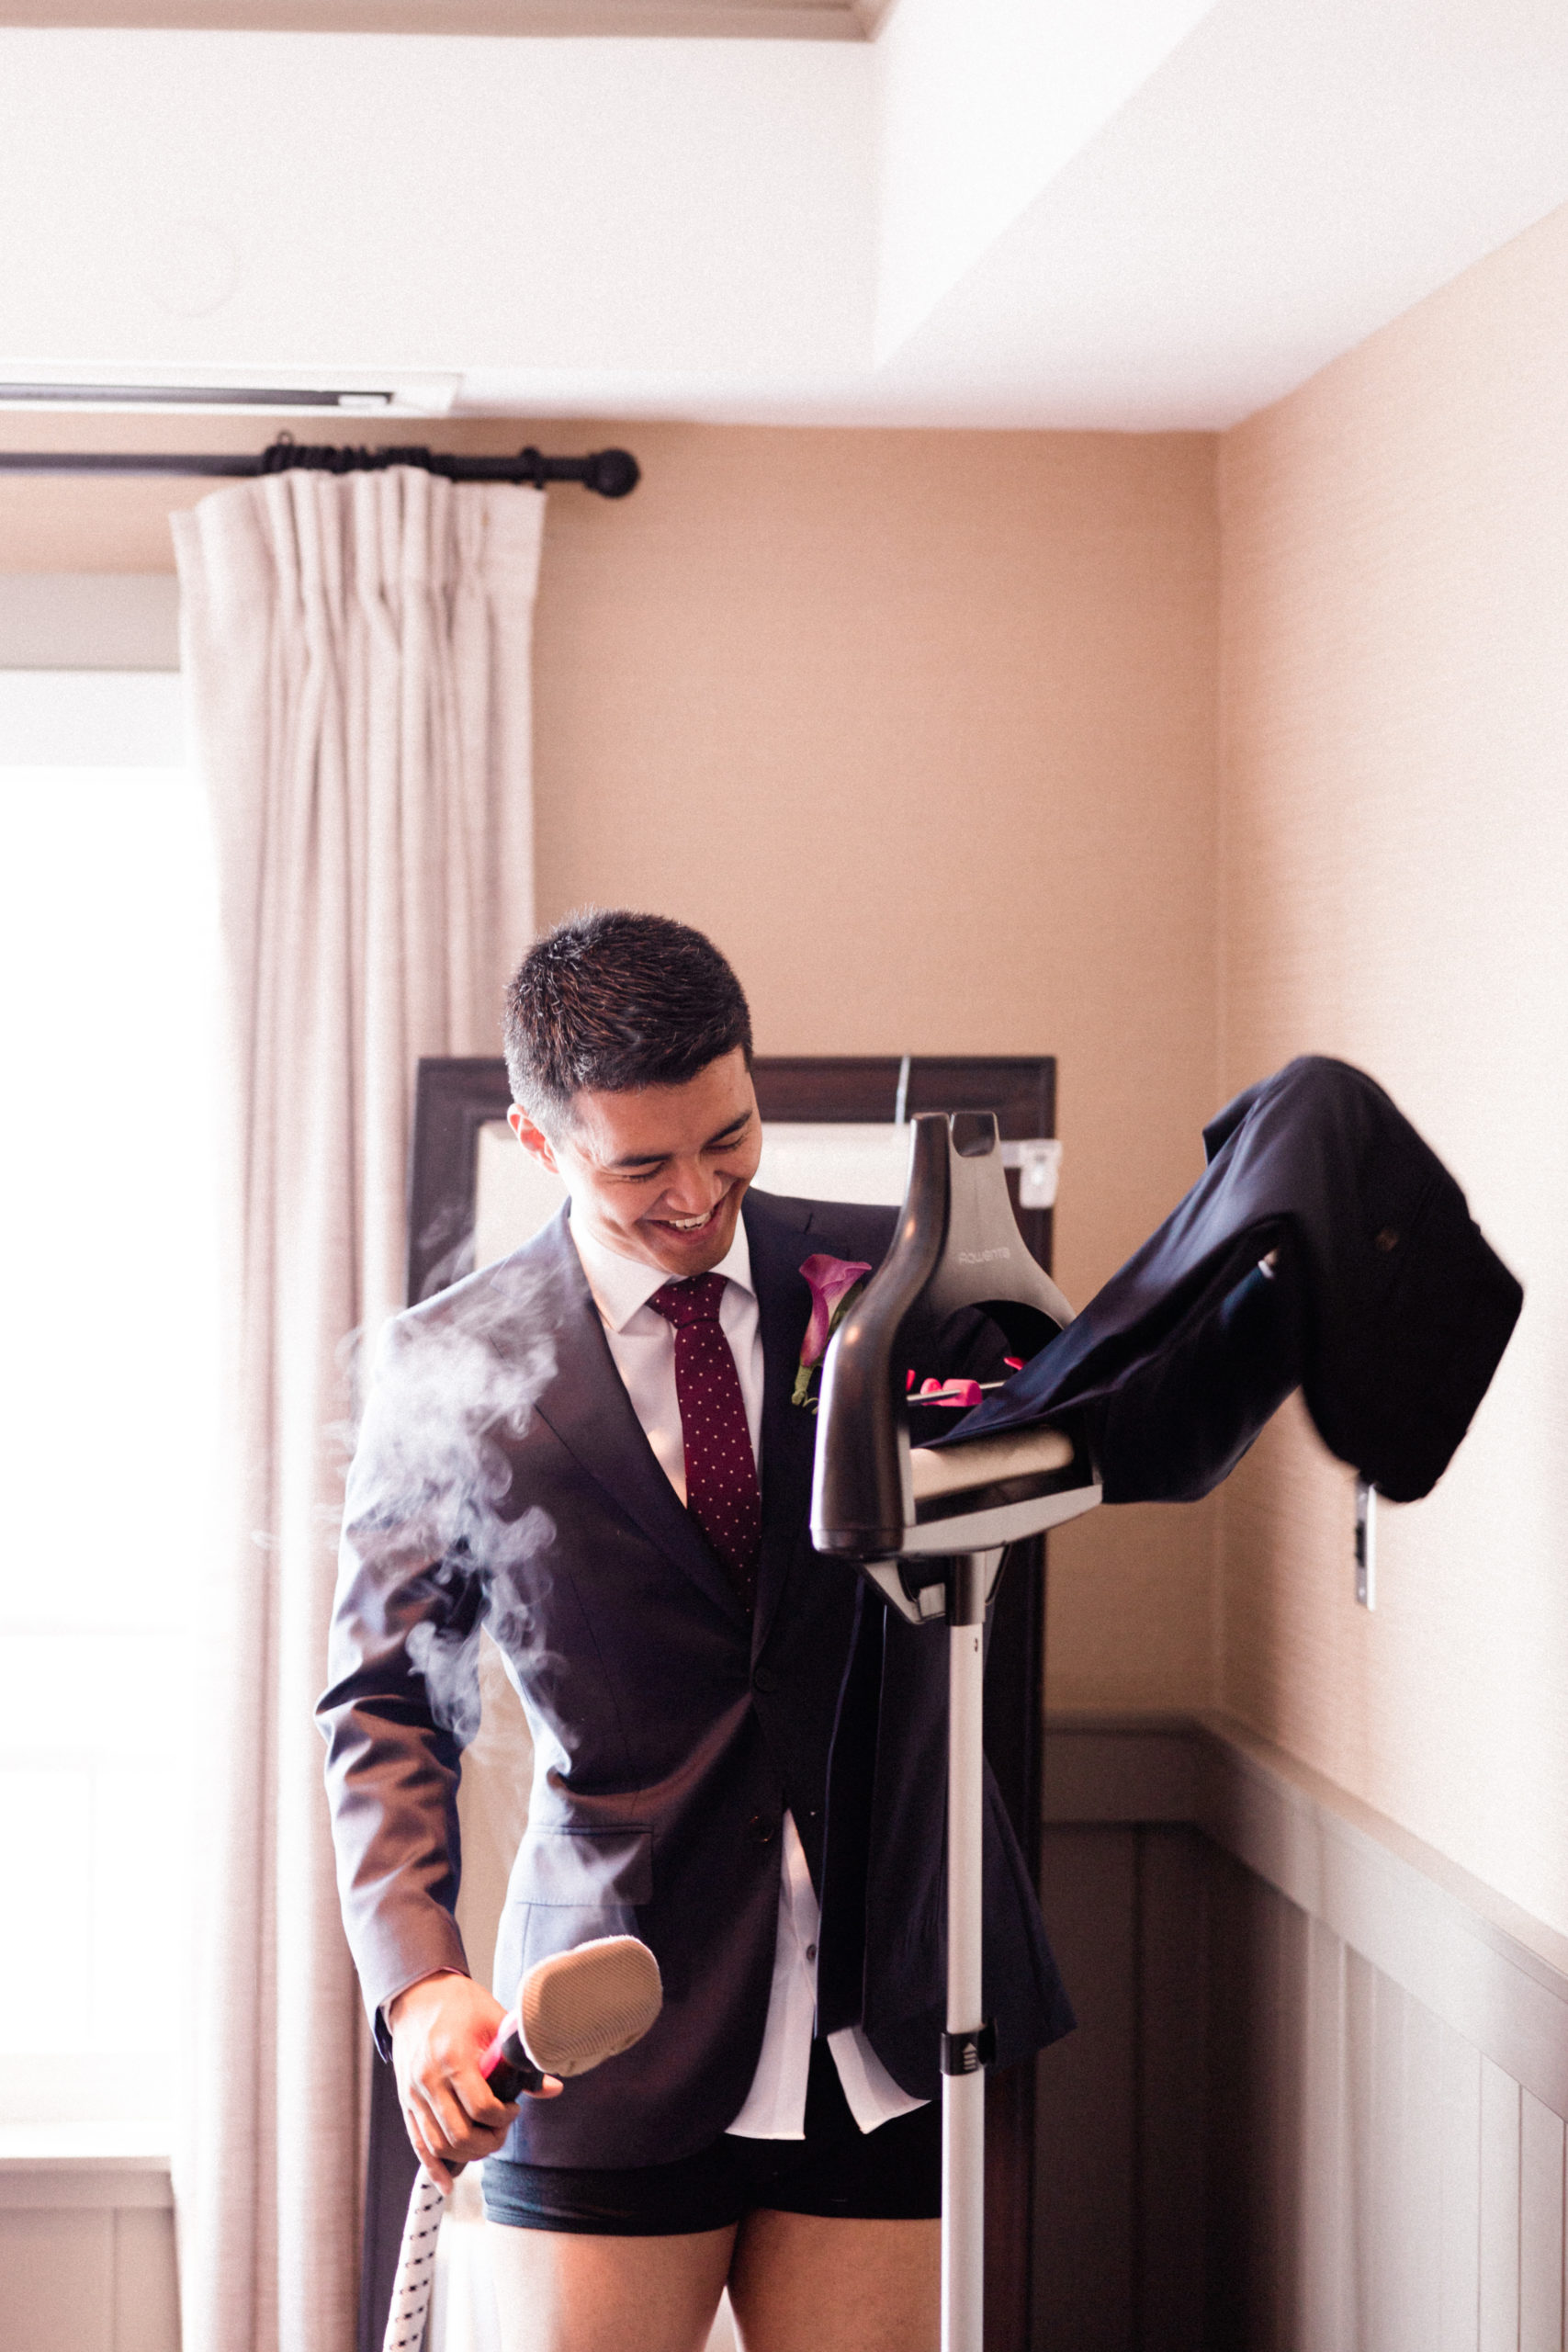 Groom ironing his tuxedo pants before walking down the aisle